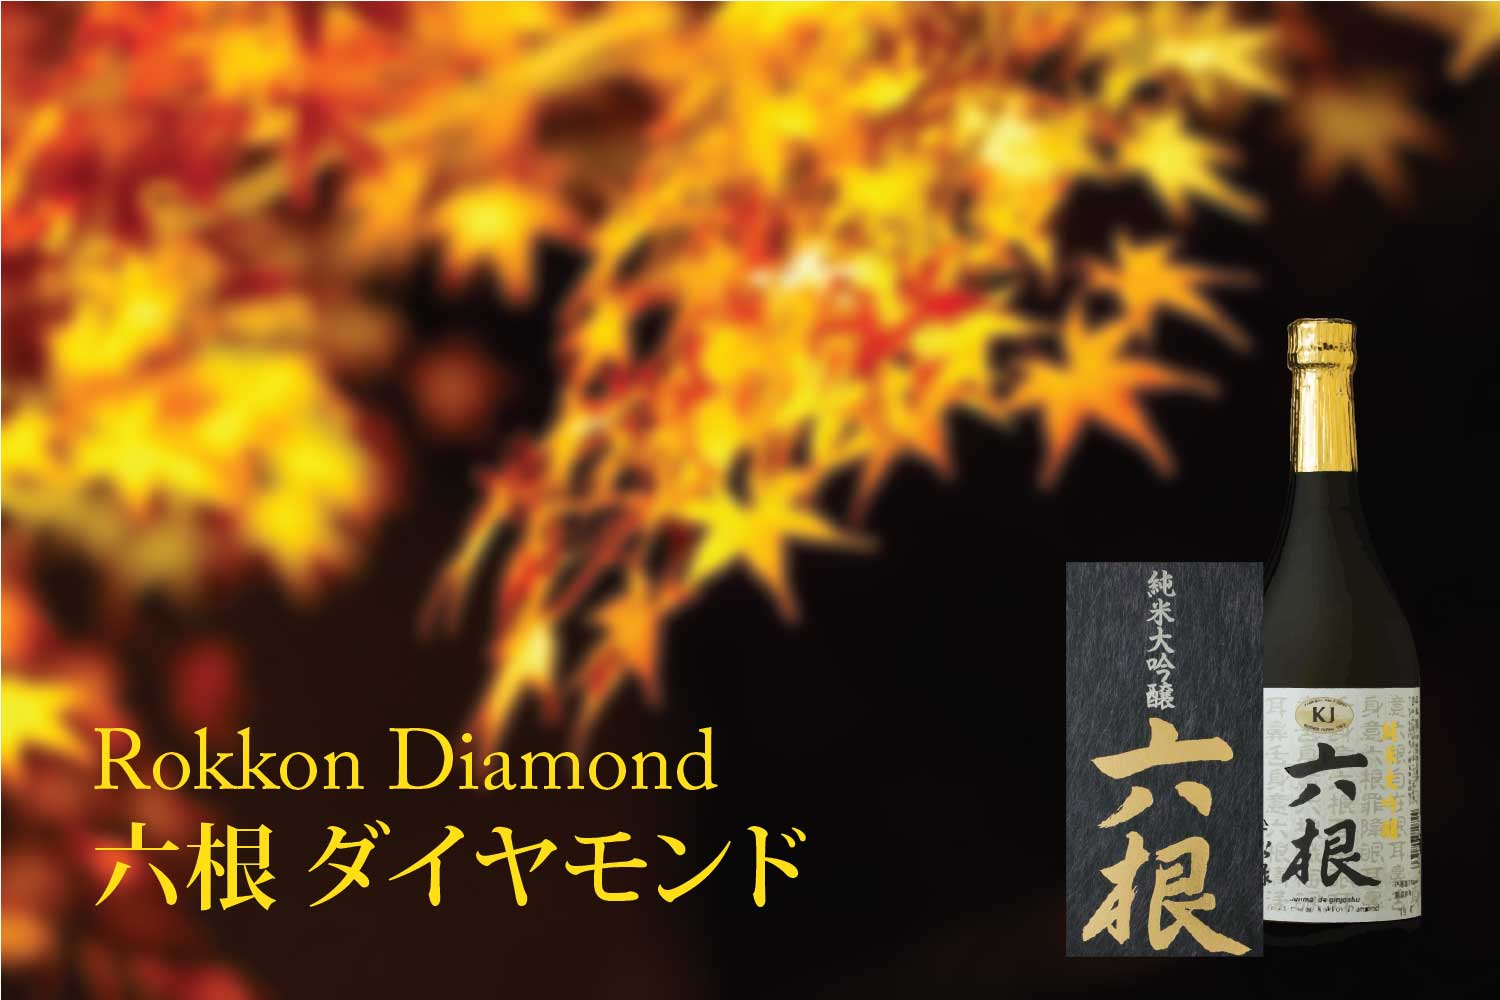 rare-limited-bottle-rokkon-diamond-japanese-sake